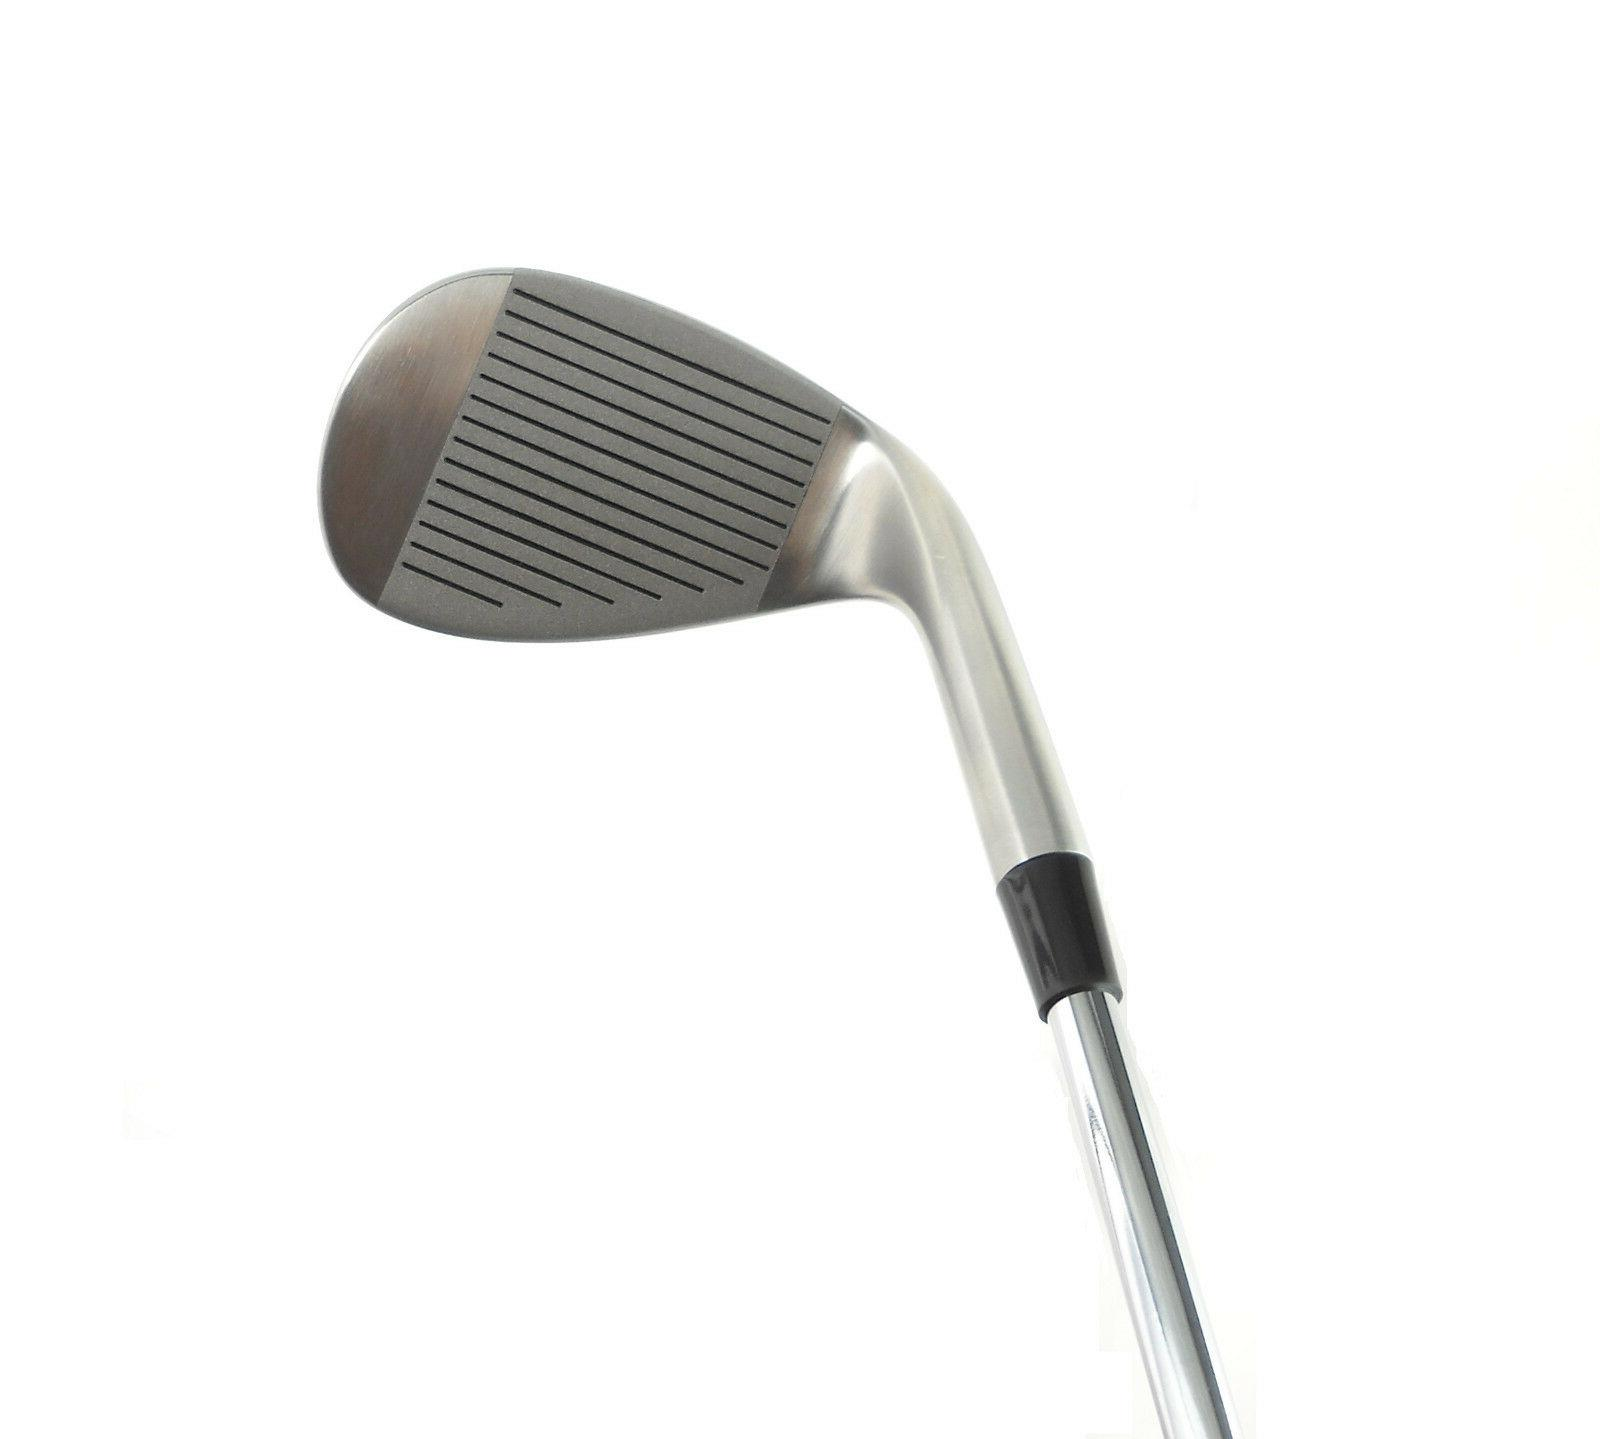 NEW! RIGHT HAND SOFT SAND WEDGE LOB WEDGE